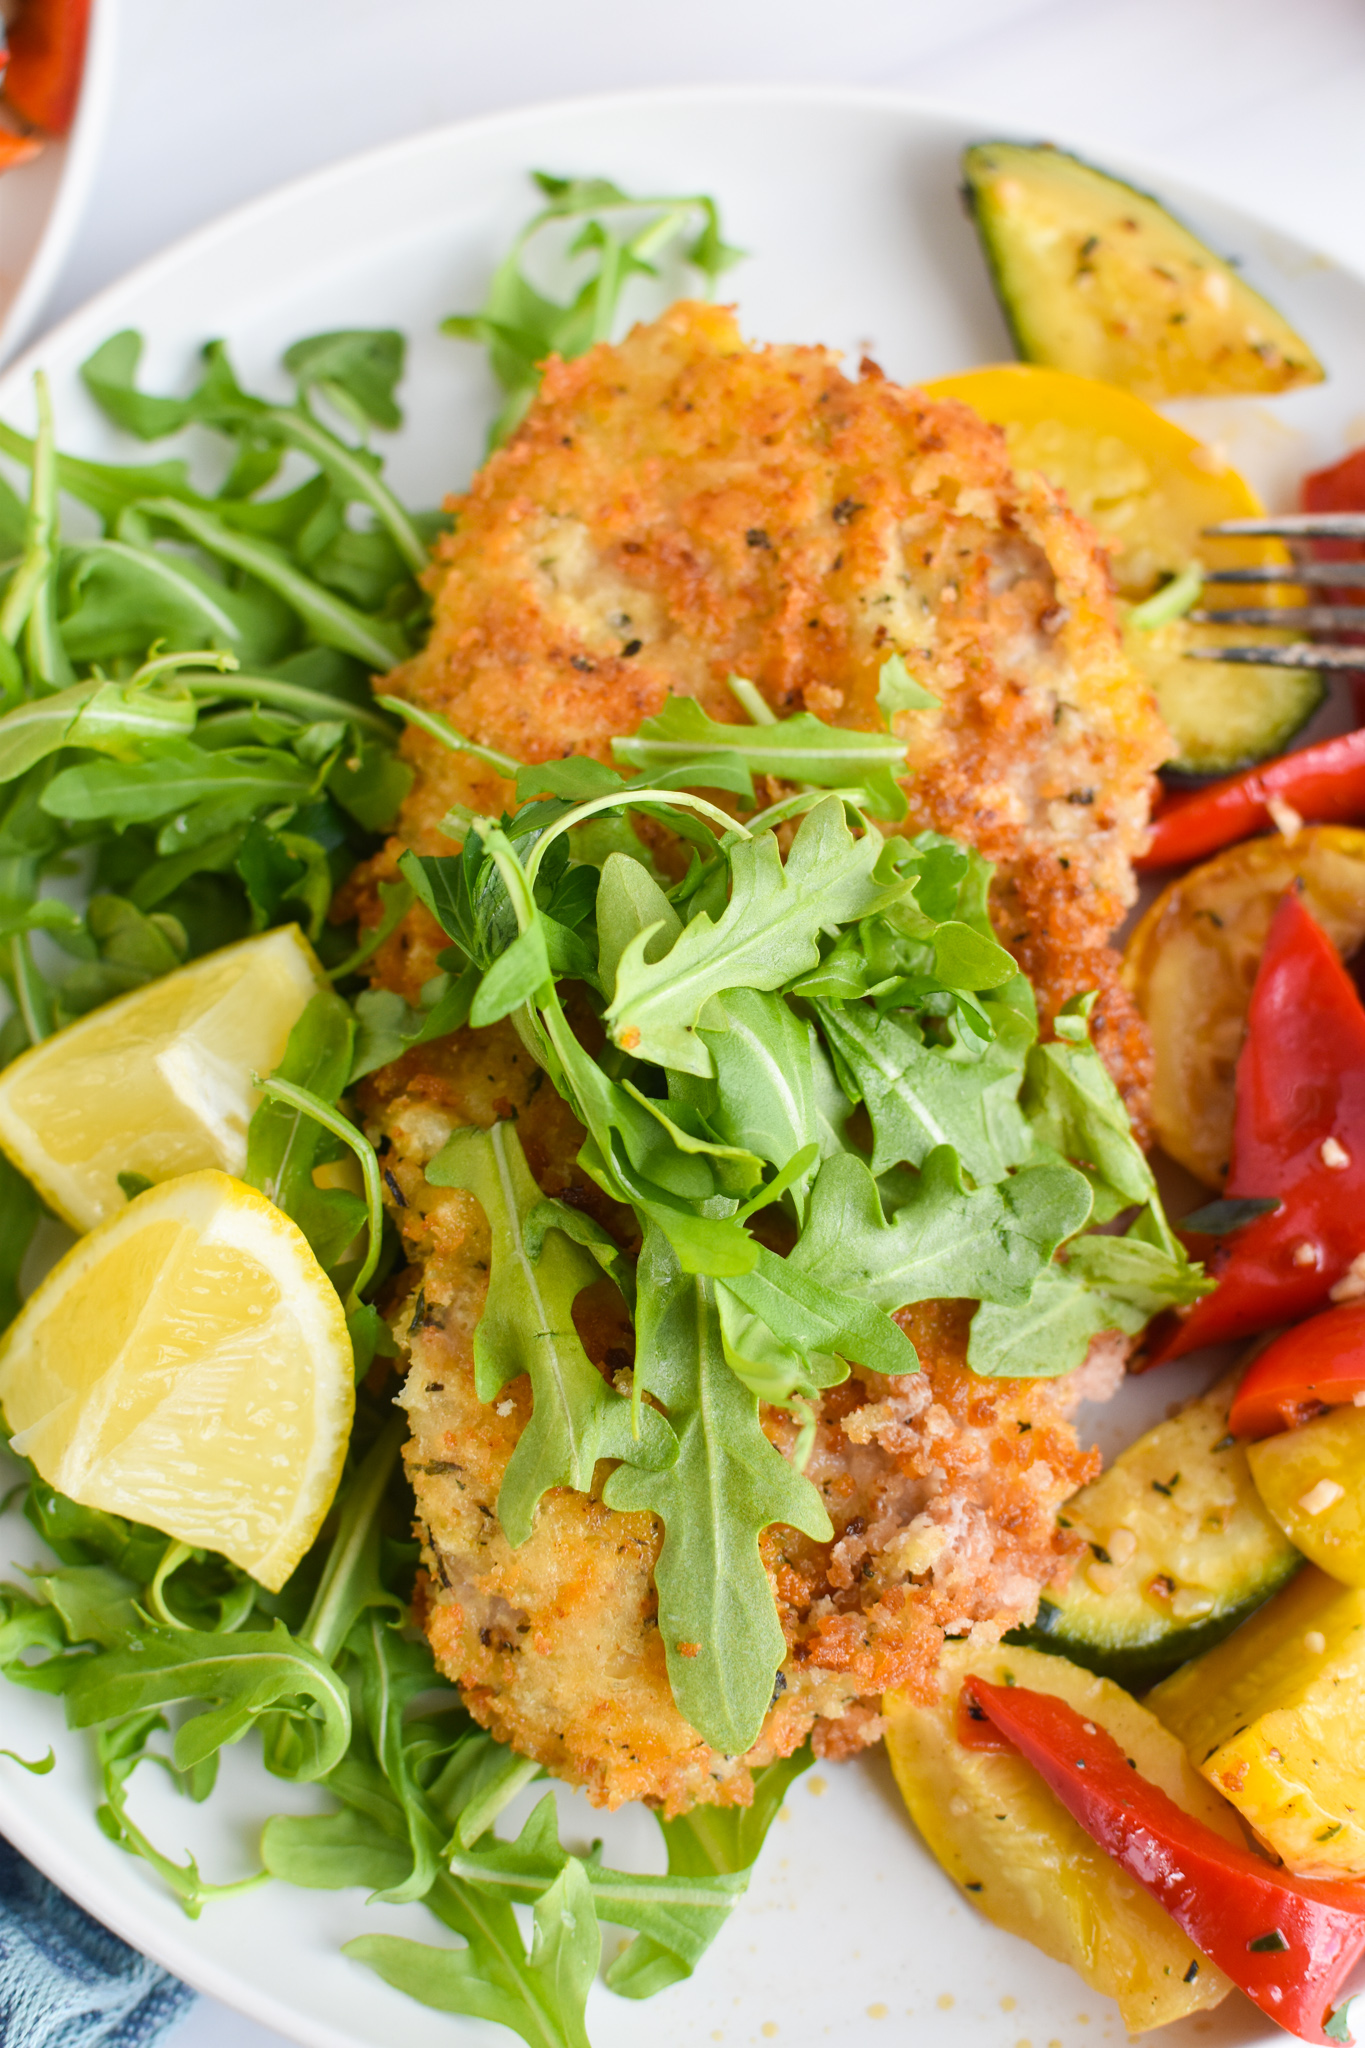 Easy Veal Milanese Recipe with arugula.